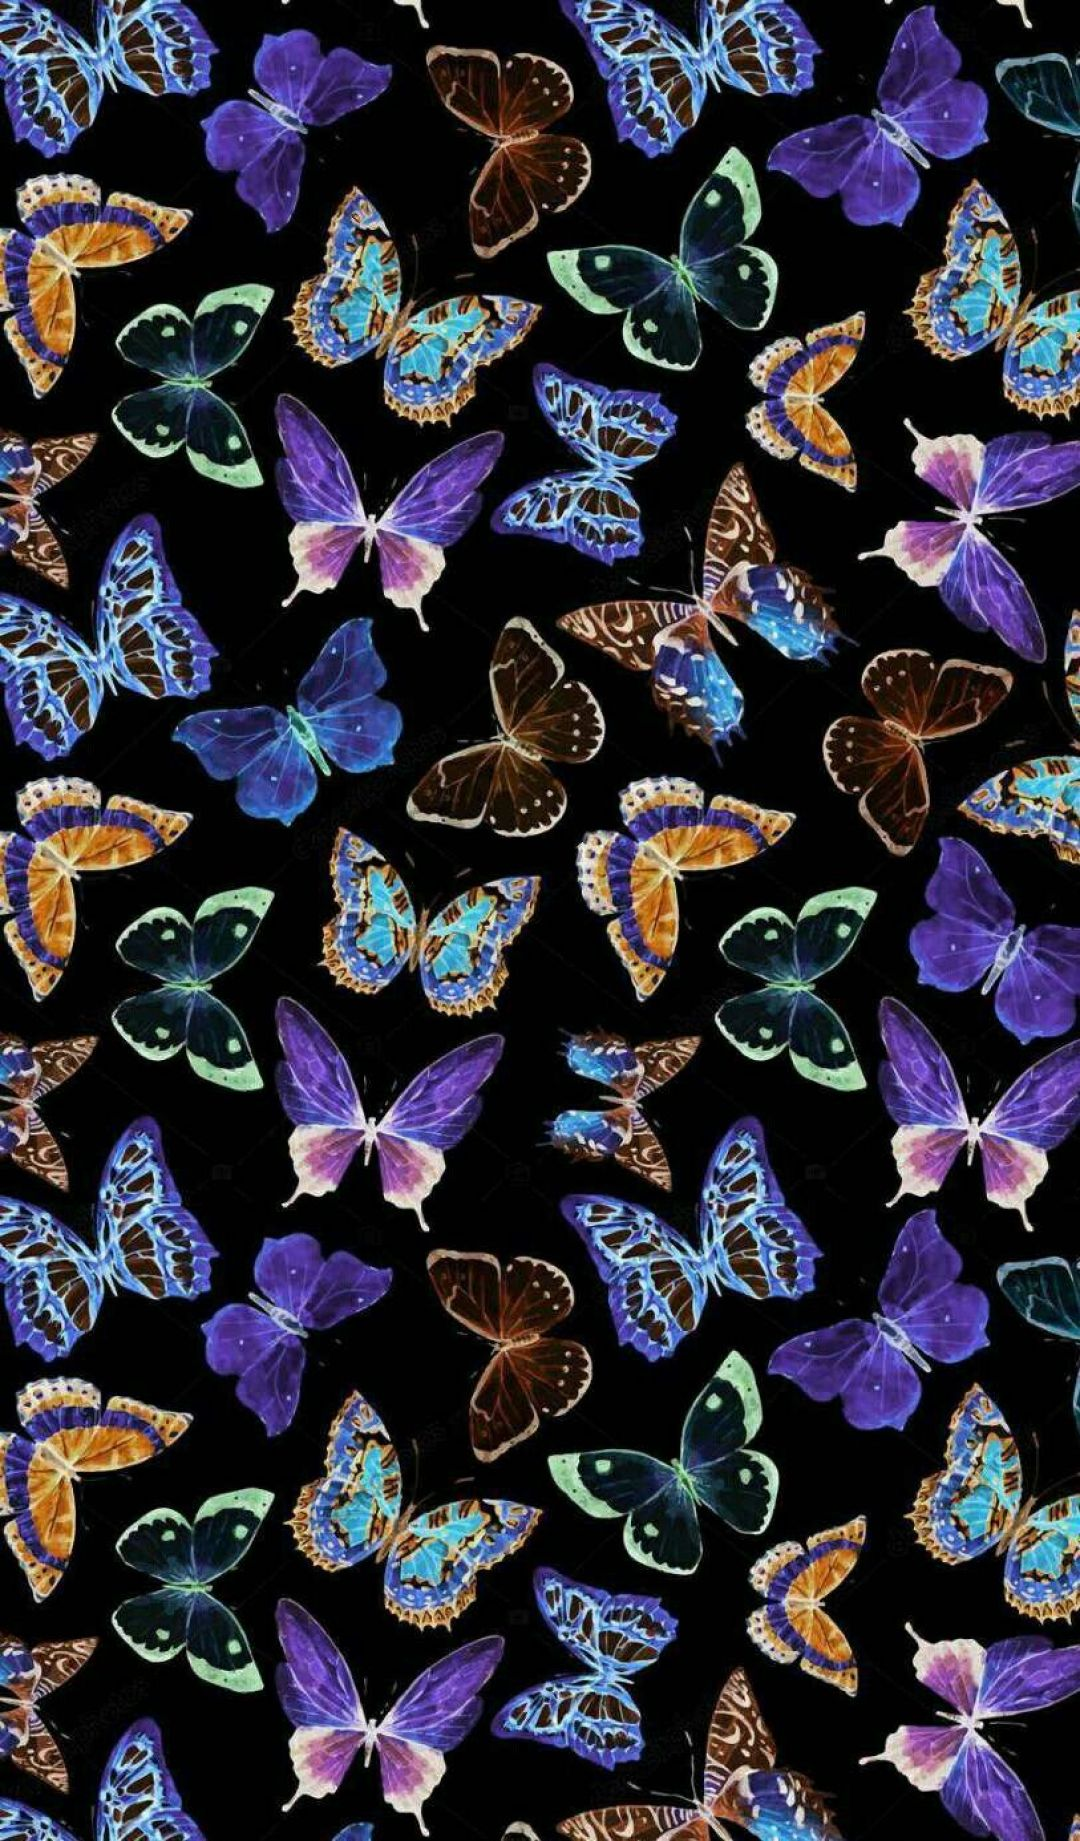 Android, Iphone, Desktop Hd Backgrounds / Wallpapers - Butterfly Iphone Wallpaper Aesthetic - HD Wallpaper